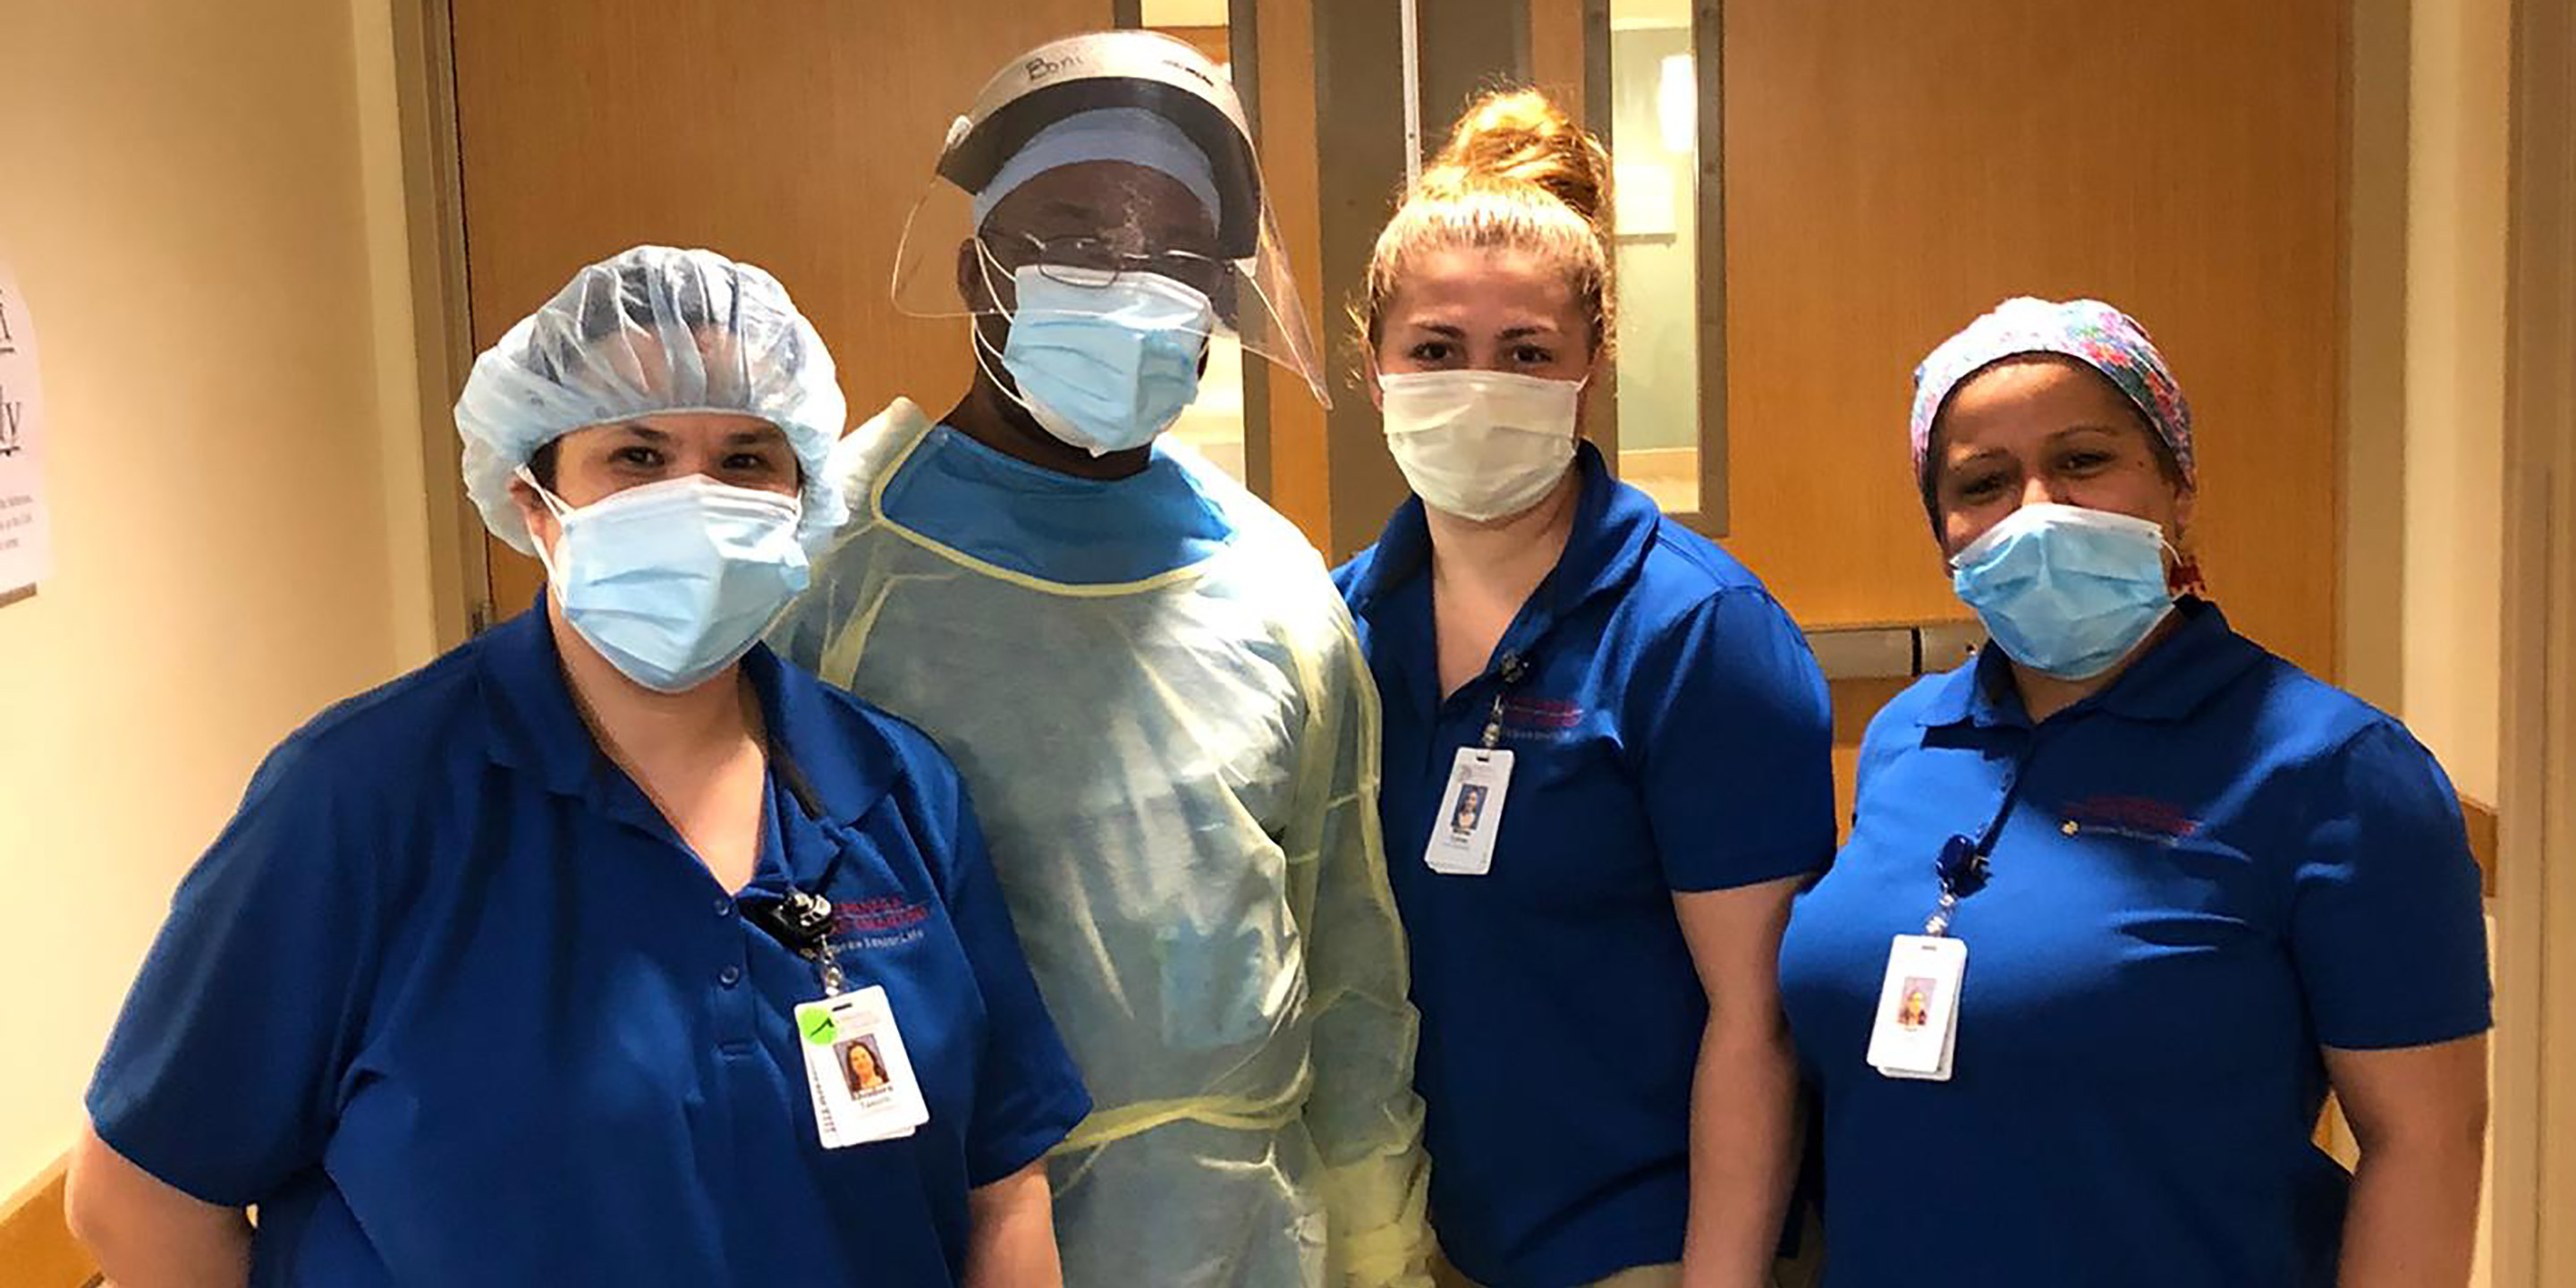 A group of Hebrew SeniorLife staff members stand together while wearing their PPE.